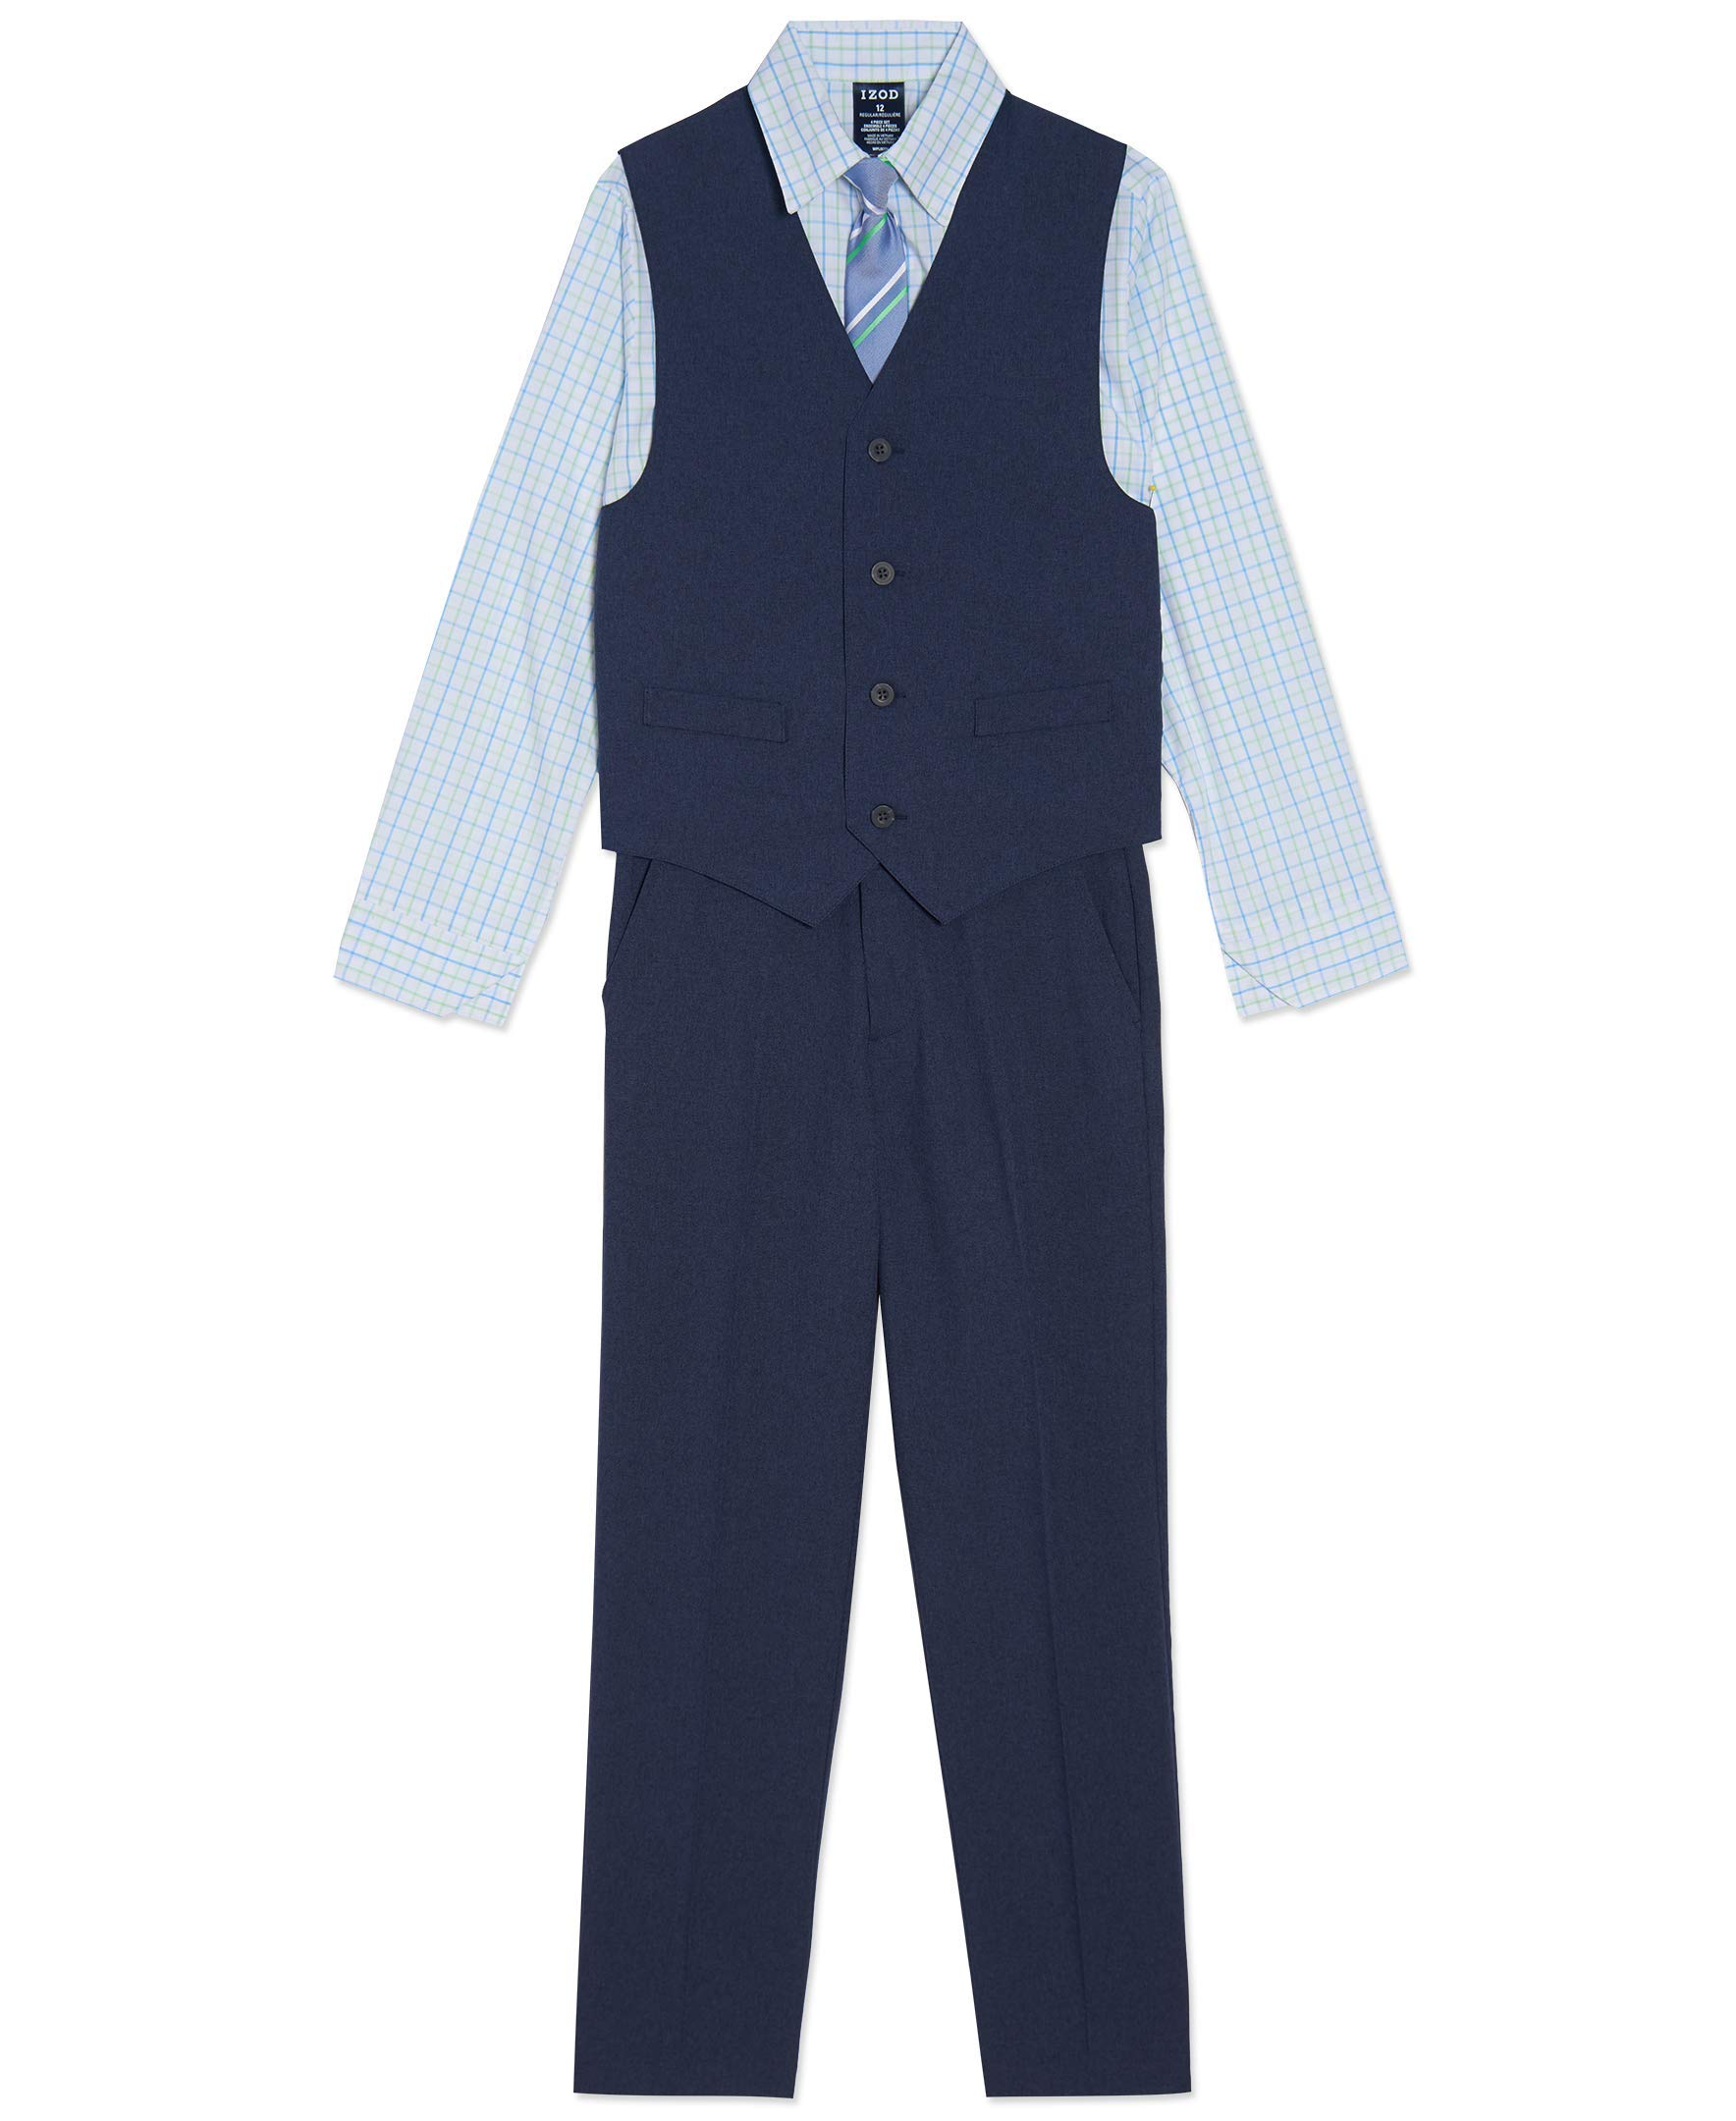 IZOD Boys' 4-Piece Formal Vest Set with Shirt, Vest, Pants, and Tie